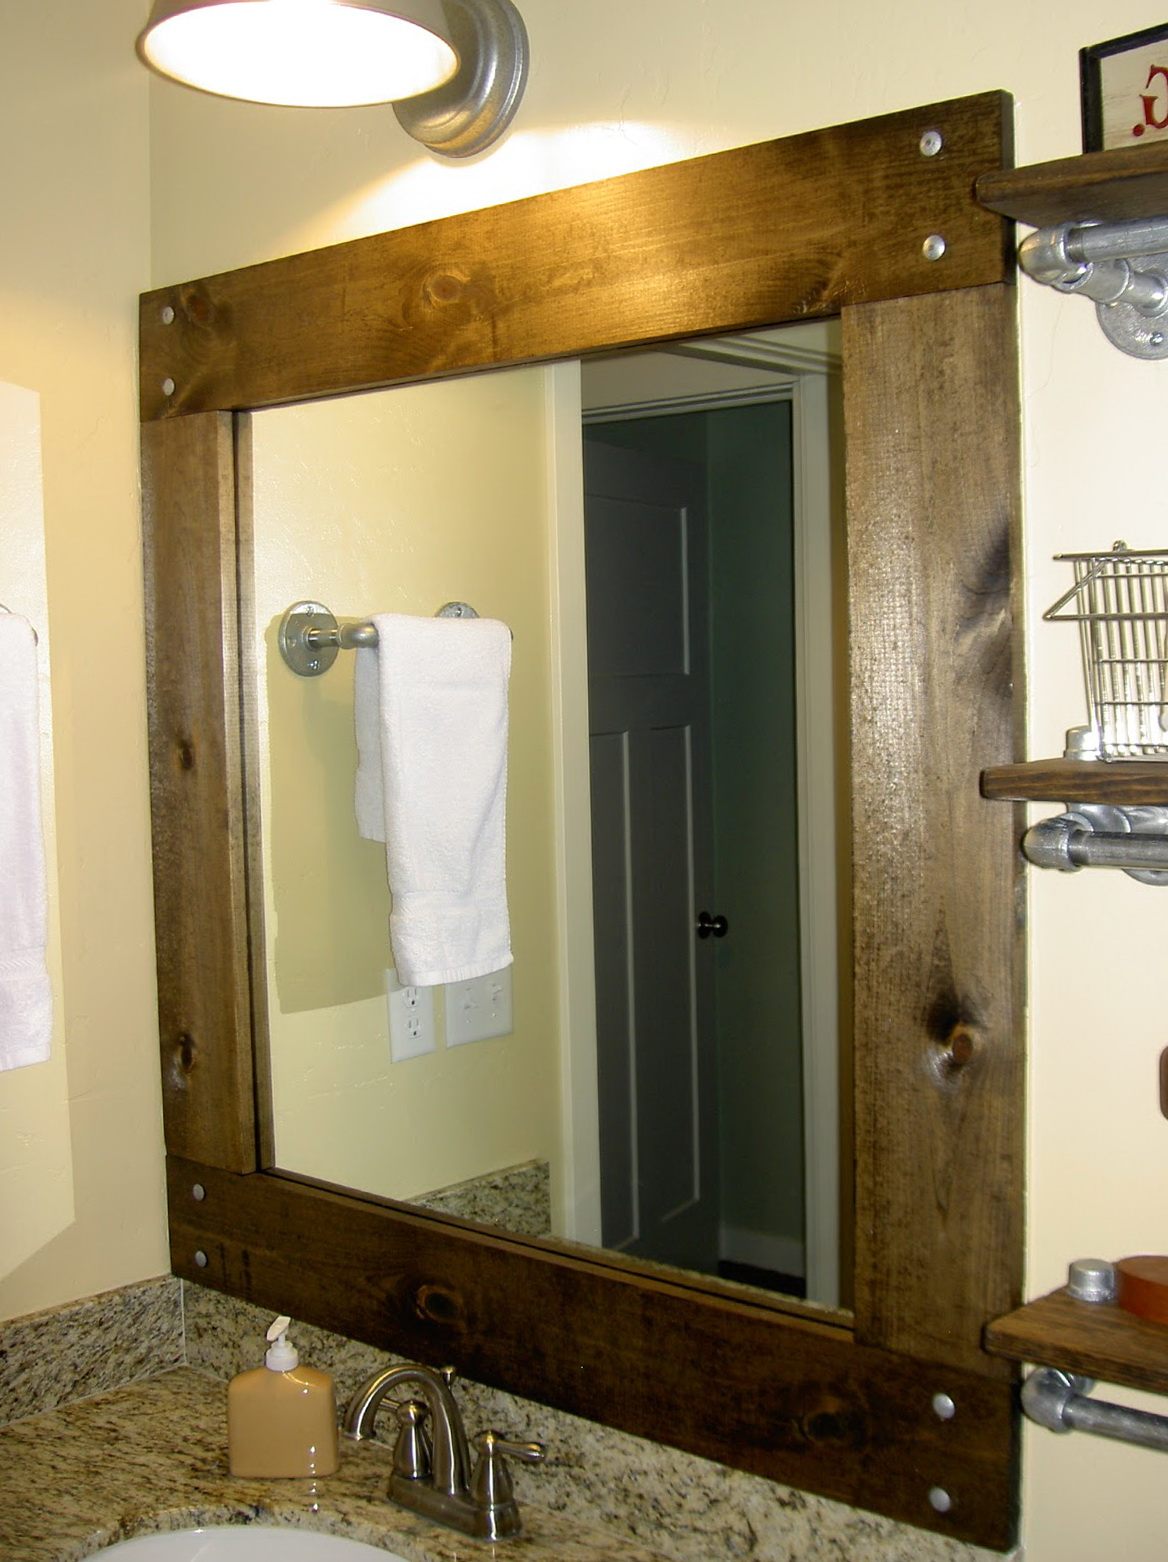 Diy framed mirrors for bathroom home design ideas for How to frame mirror in bathroom